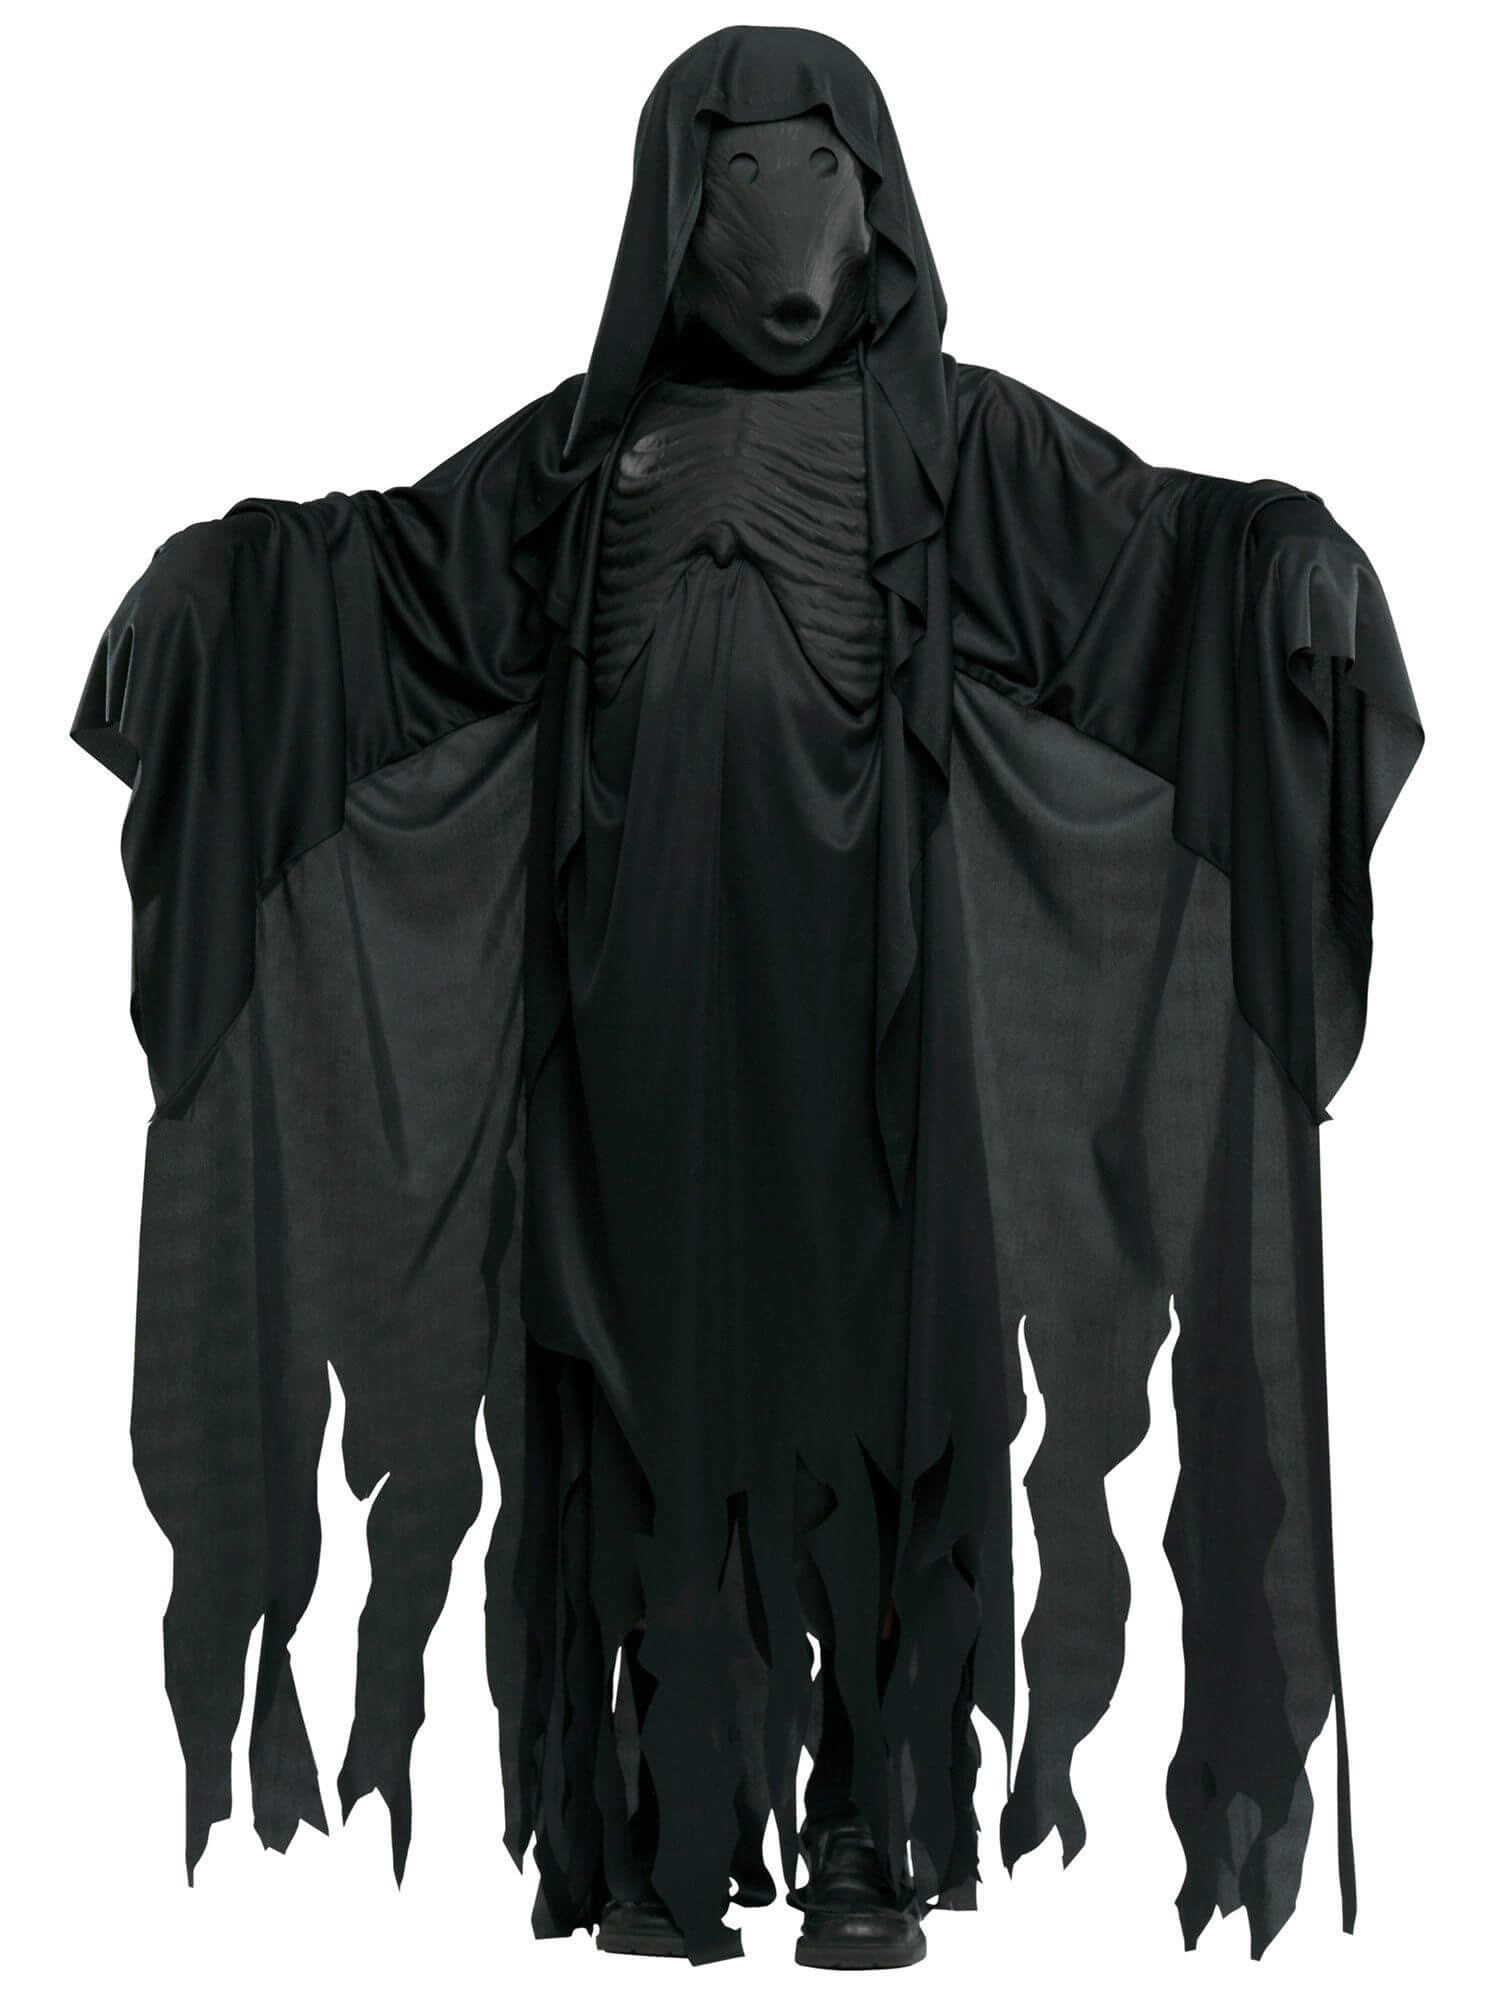 scary dementors costume for halloween